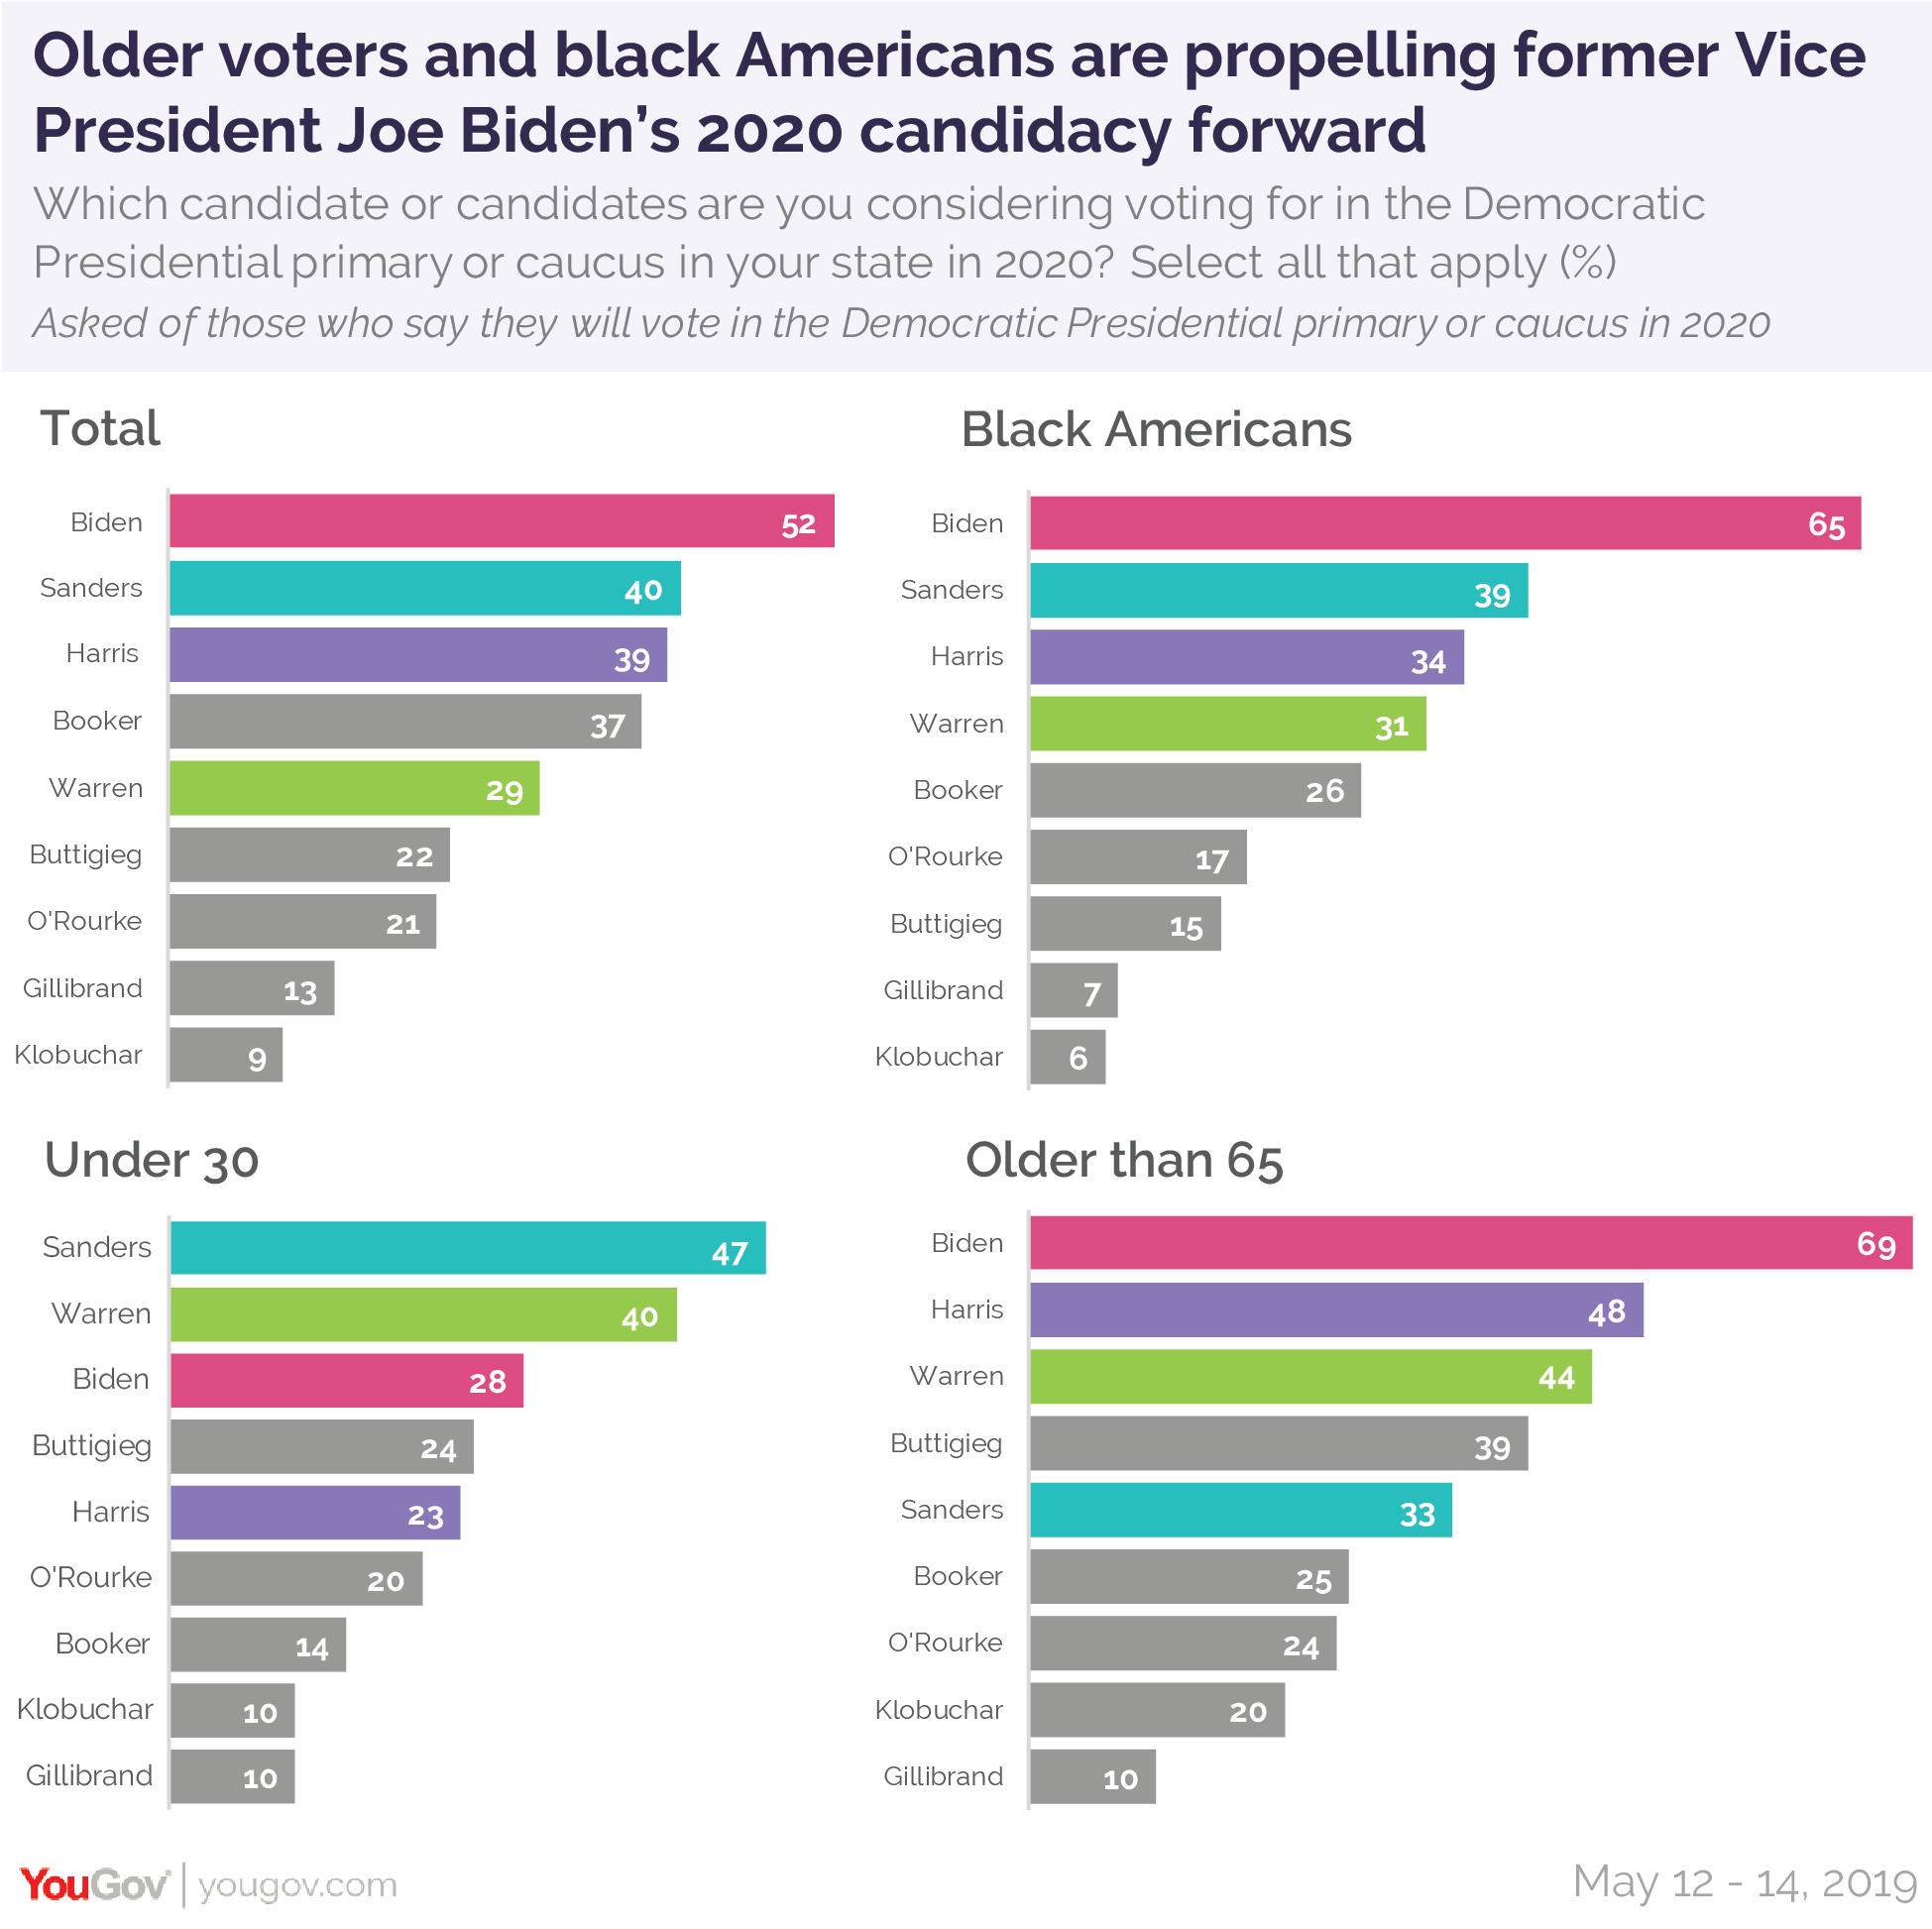 Older voters and black Americans are propelling former Vice President Joe Biden's 2020 candidacy forward